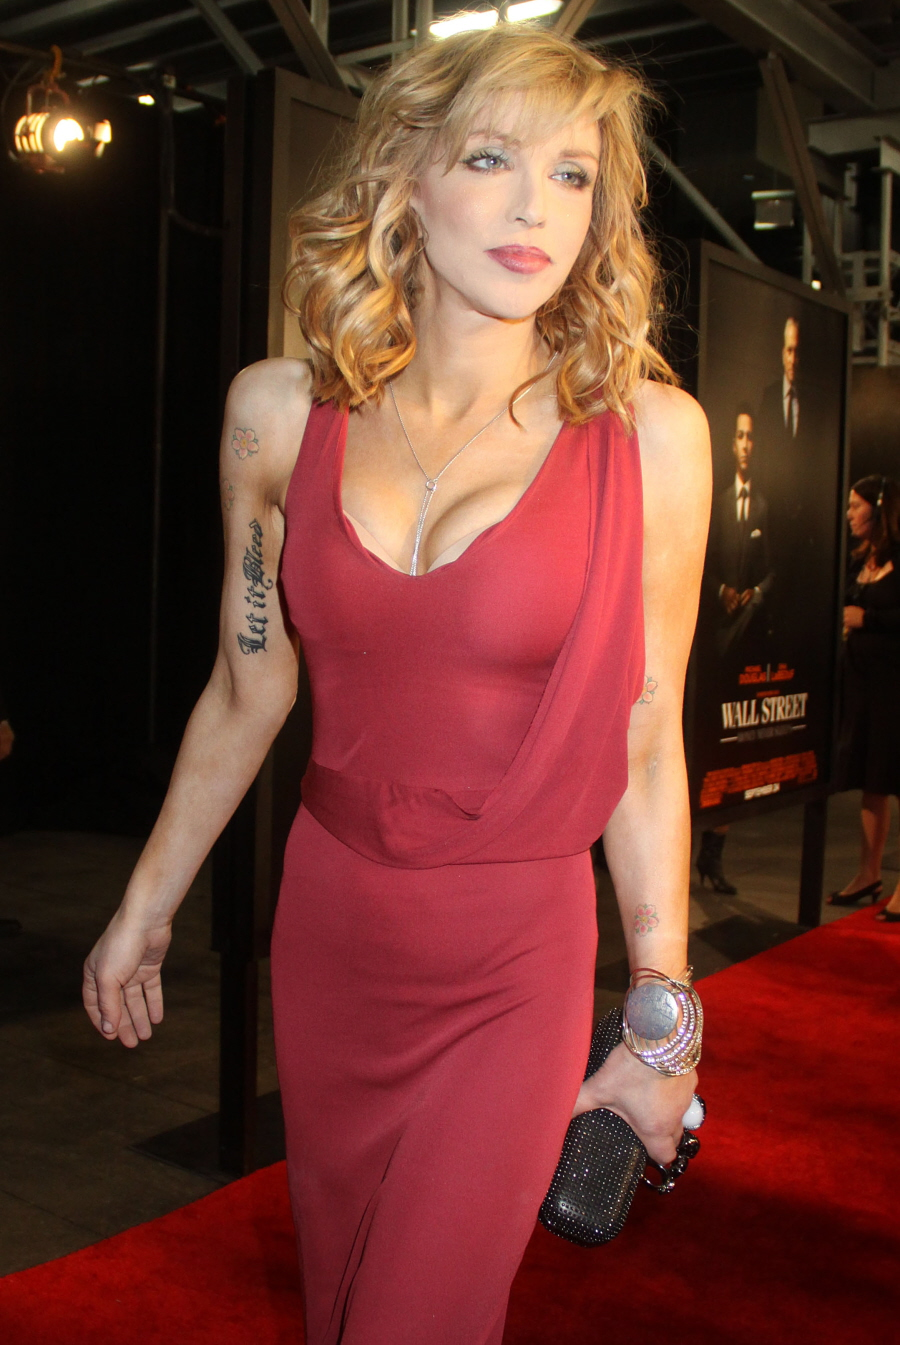 Credit Union Nyc >> Cele bitchy   Courtney Love shows off her new (alleged) plastic surgery: is it better or worse?